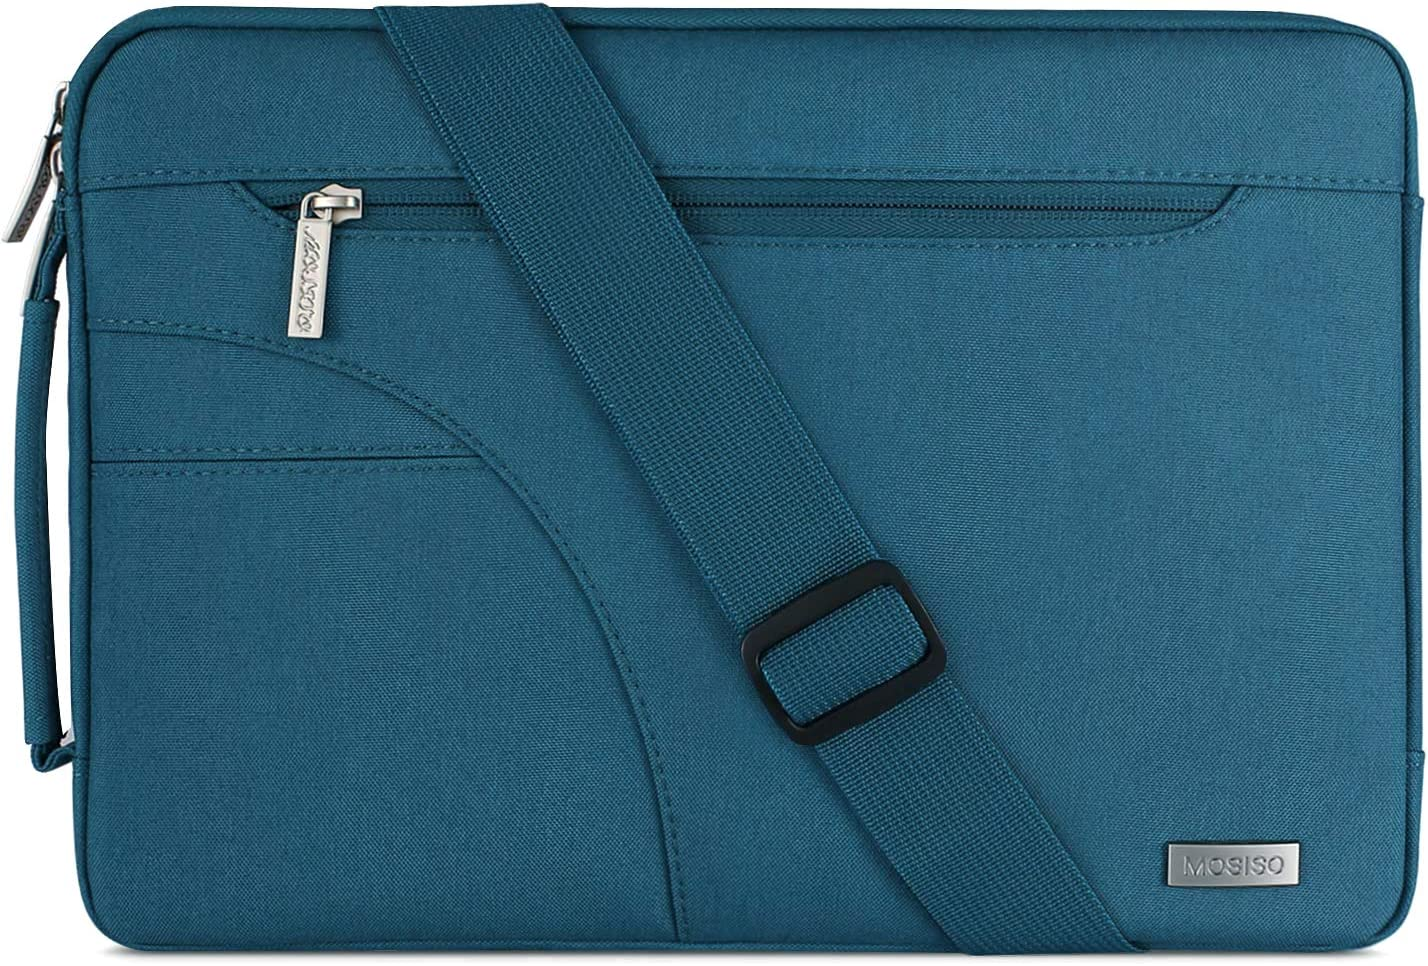 MOSISO Laptop Shoulder Bag Compatible with 2019 MacBook Pro 16 inch, 15 15.4 15.6 inch Dell Lenovo HP Asus Acer Samsung Sony Chromebook, Polyester Briefcase Sleeve with Side Handle, Deep Teal